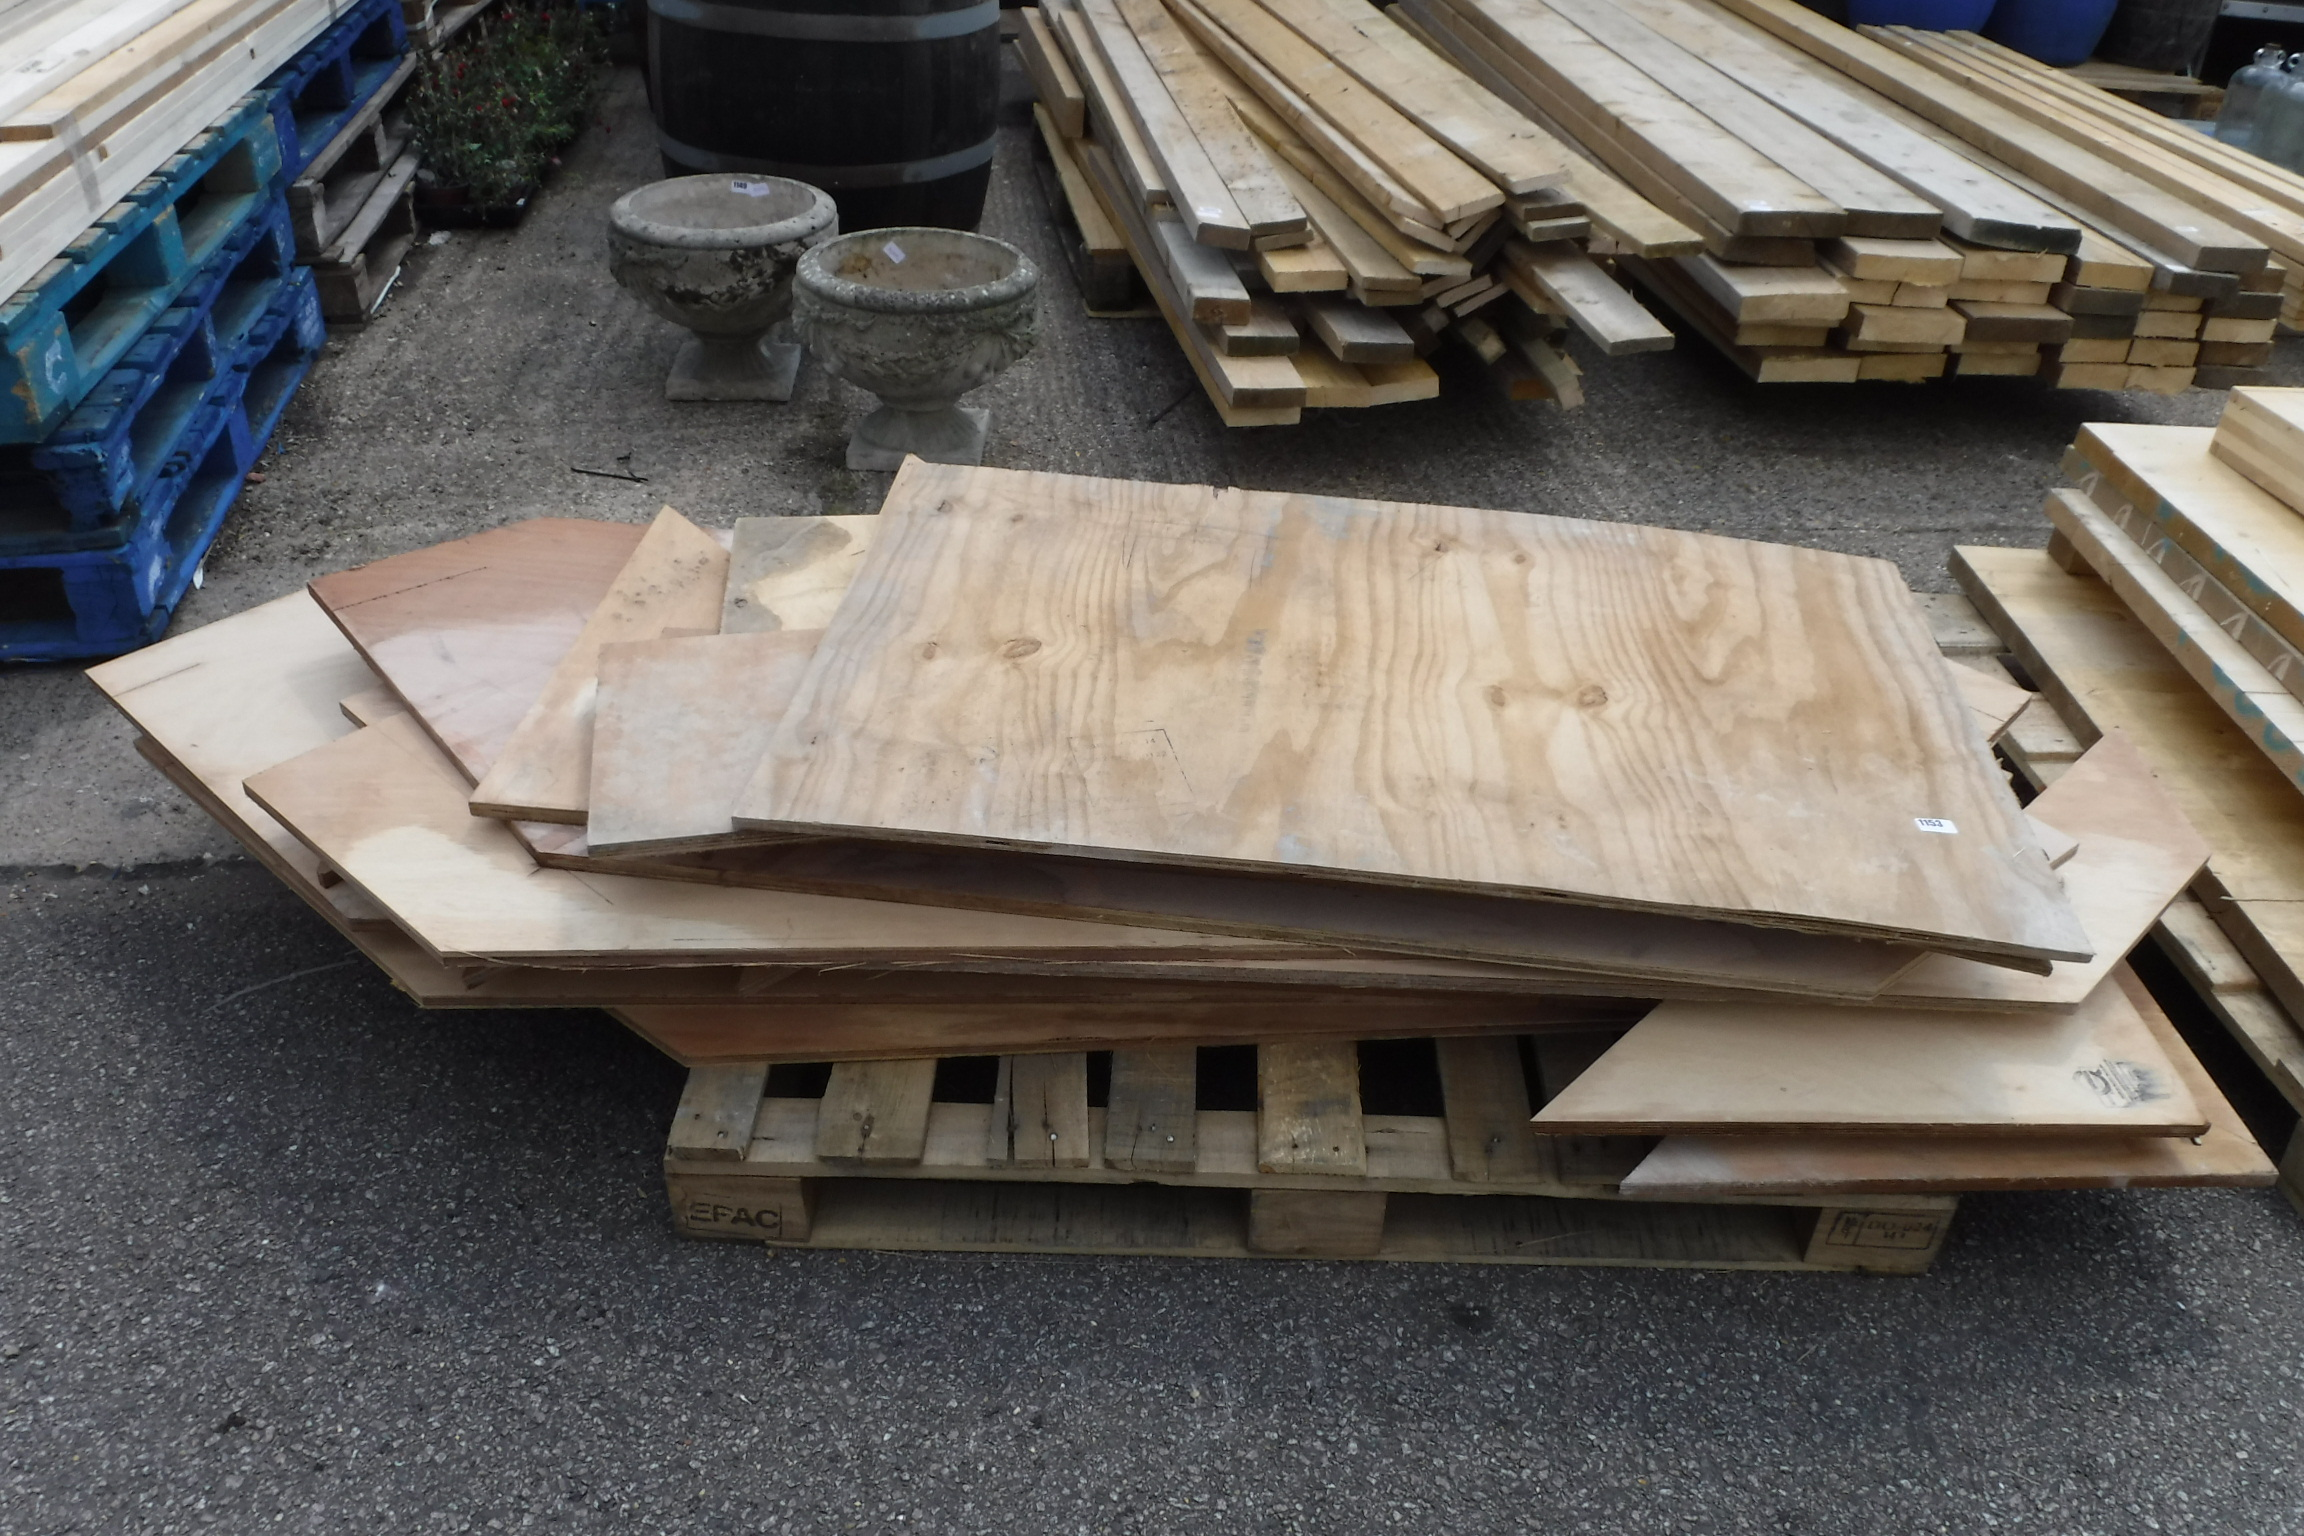 Pallet of assorted cut ply